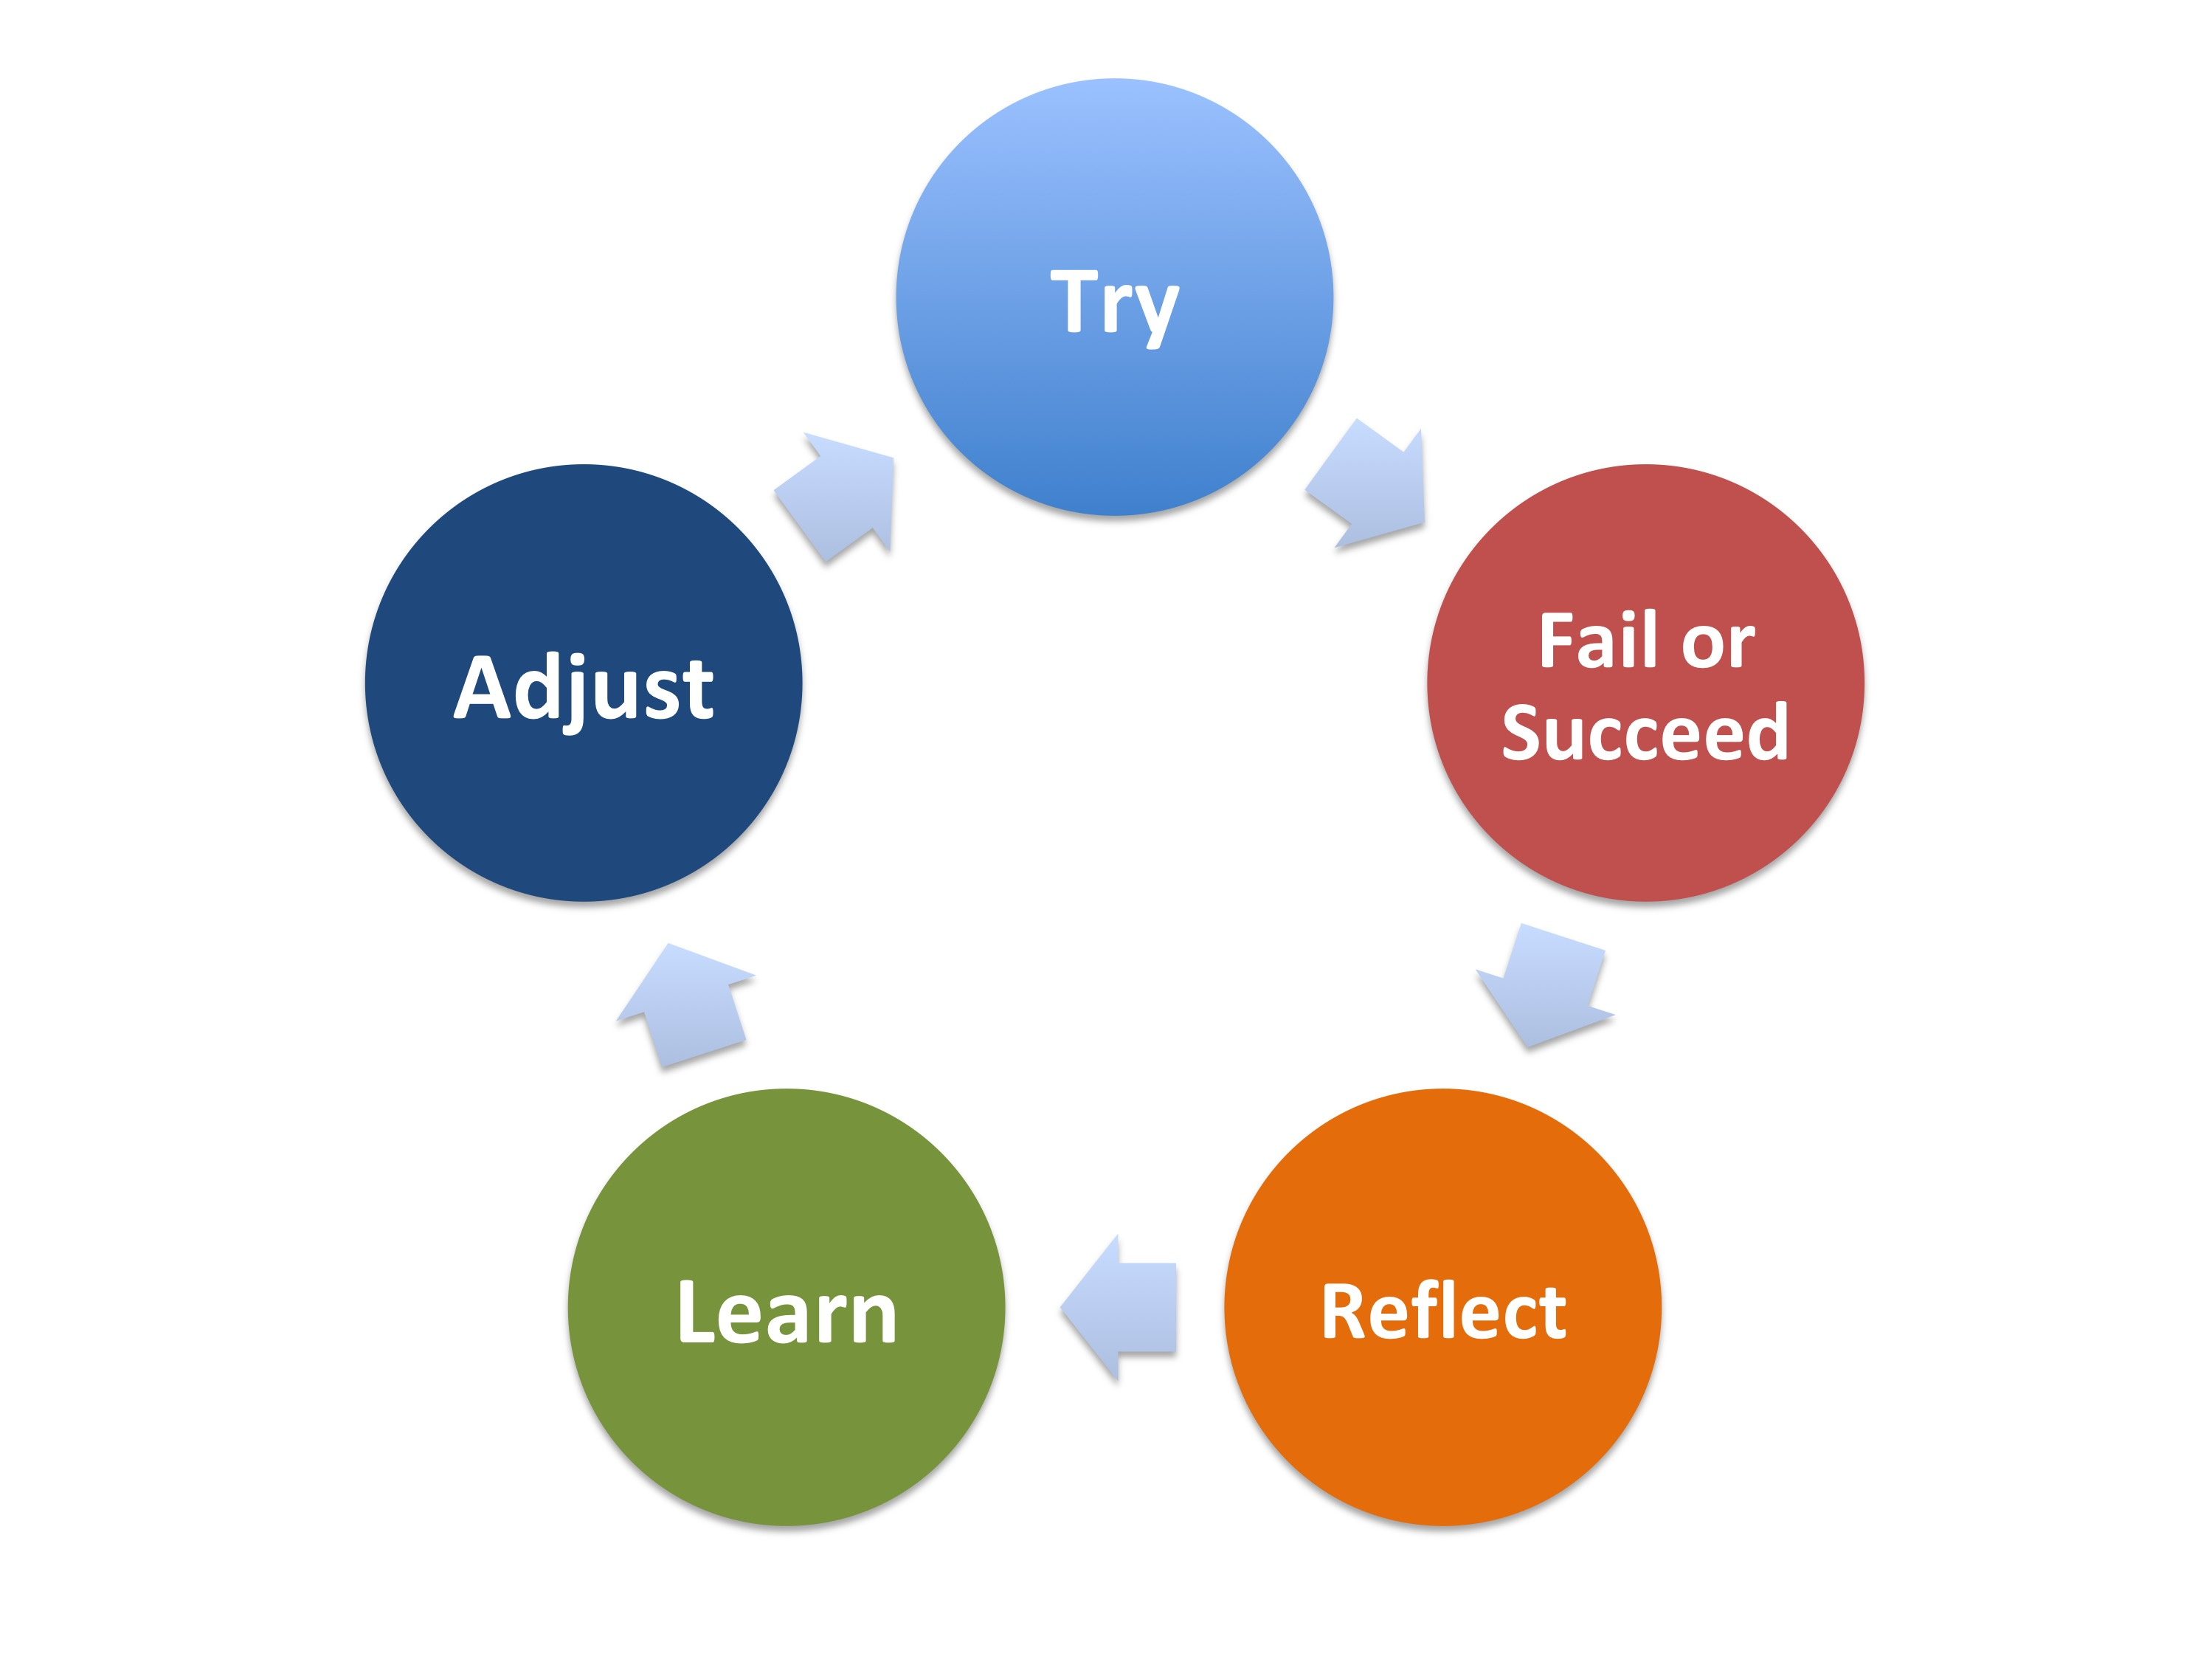 5 Steps of the Learning Process